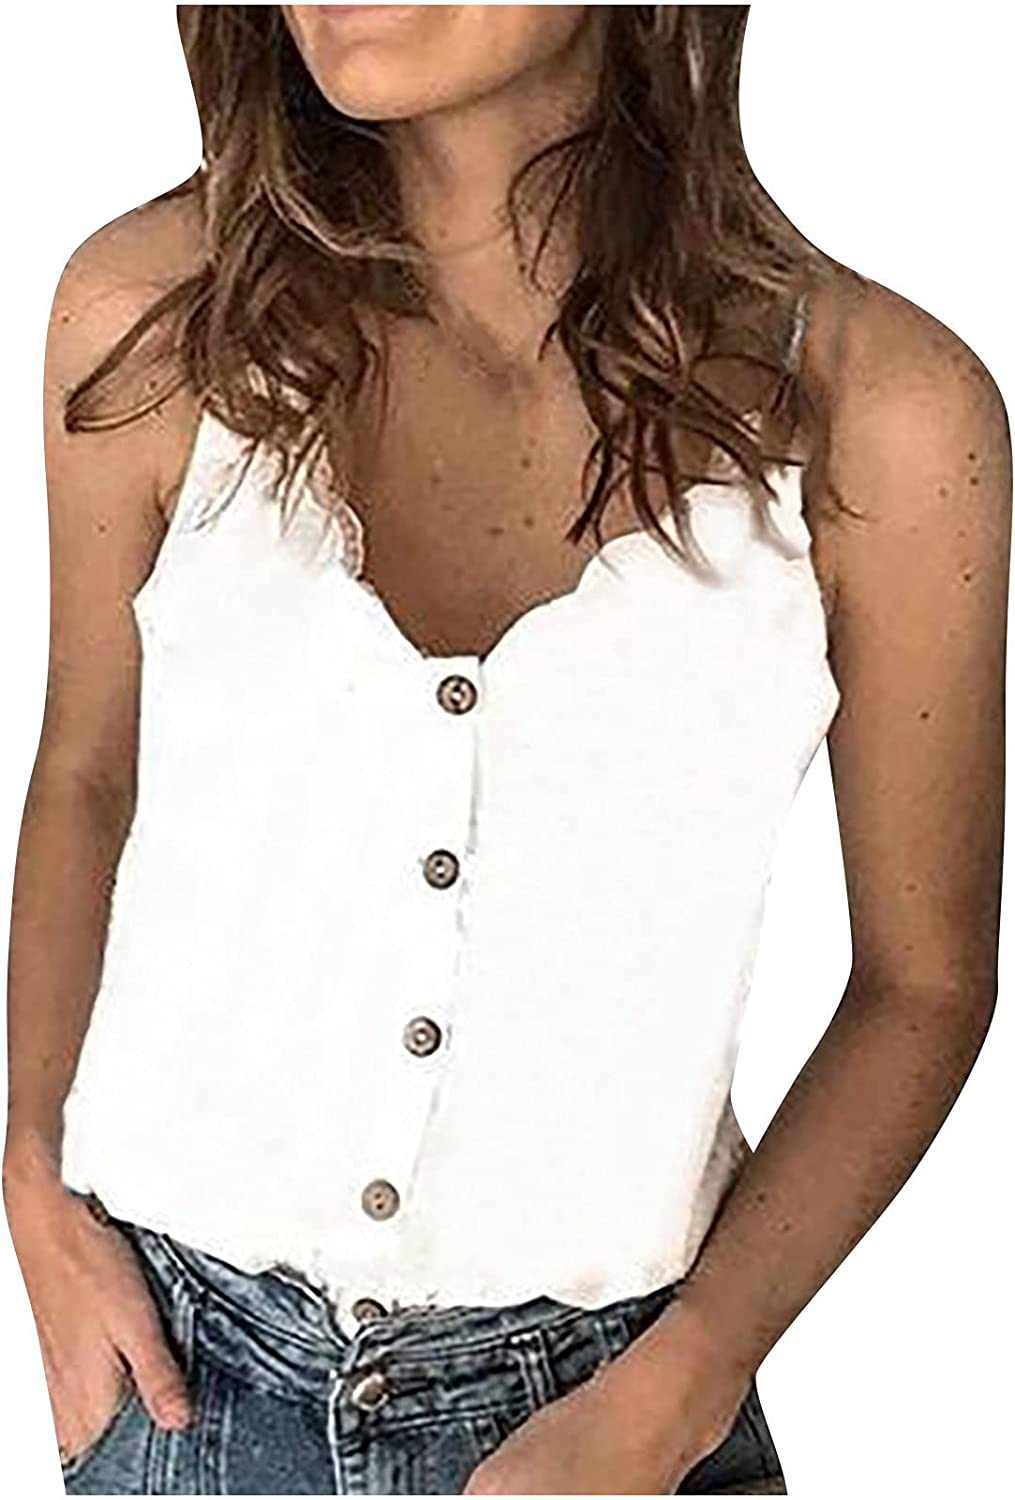 Women's Button Camisole Tank Top Scallop V Neck Spaghetti Strap Cami Tops Loose Casual Sleeveless Shirts Blouses